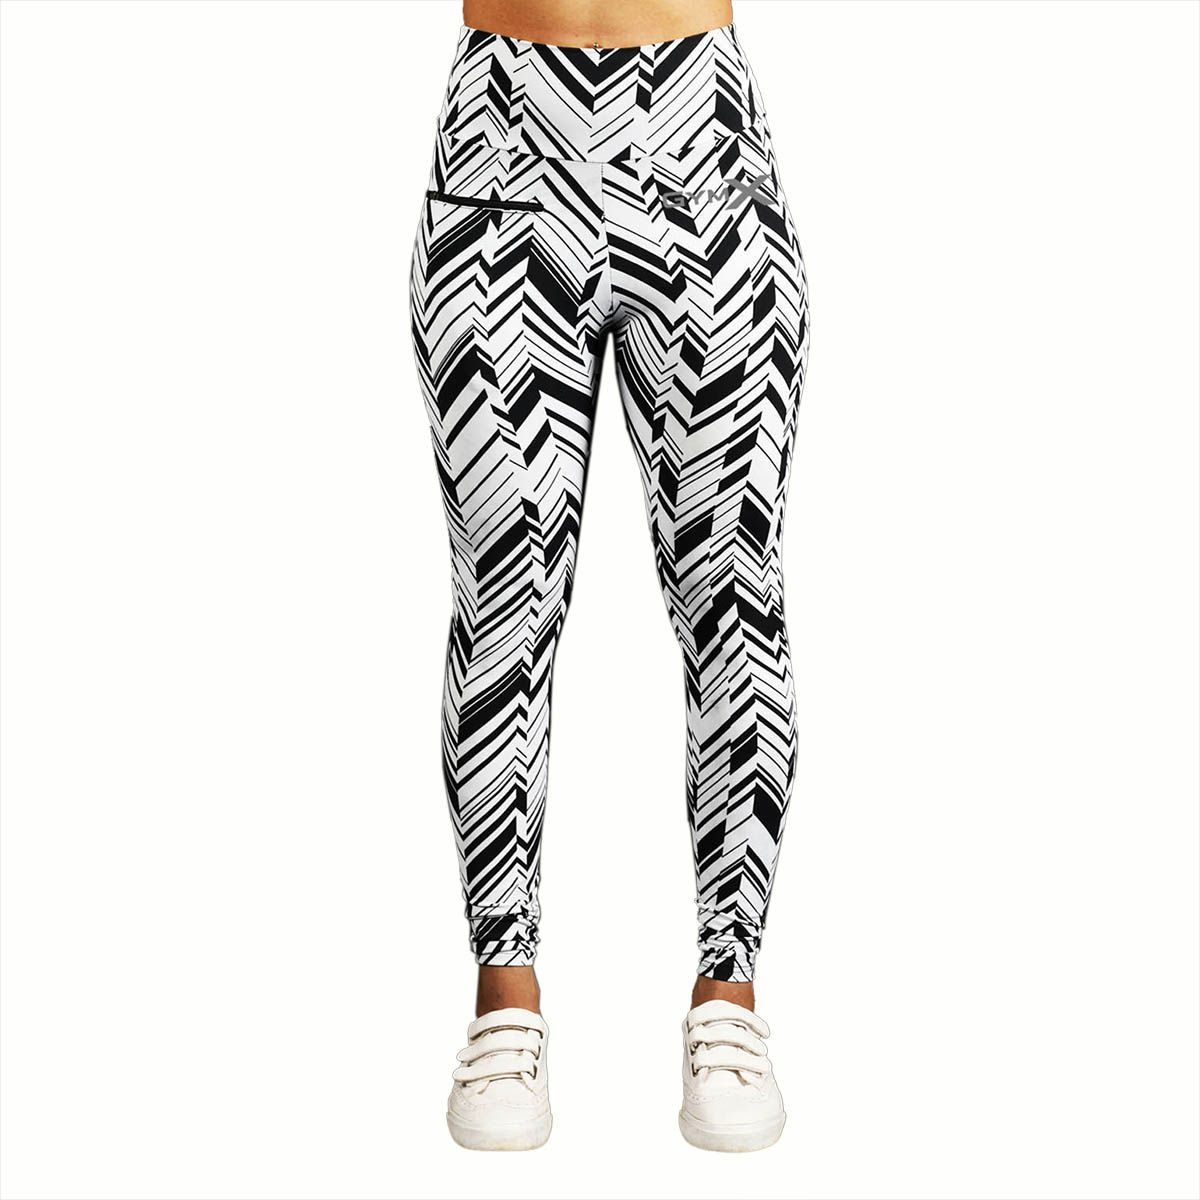 GymX Womens Polyester Allure Leggings:Monocrome